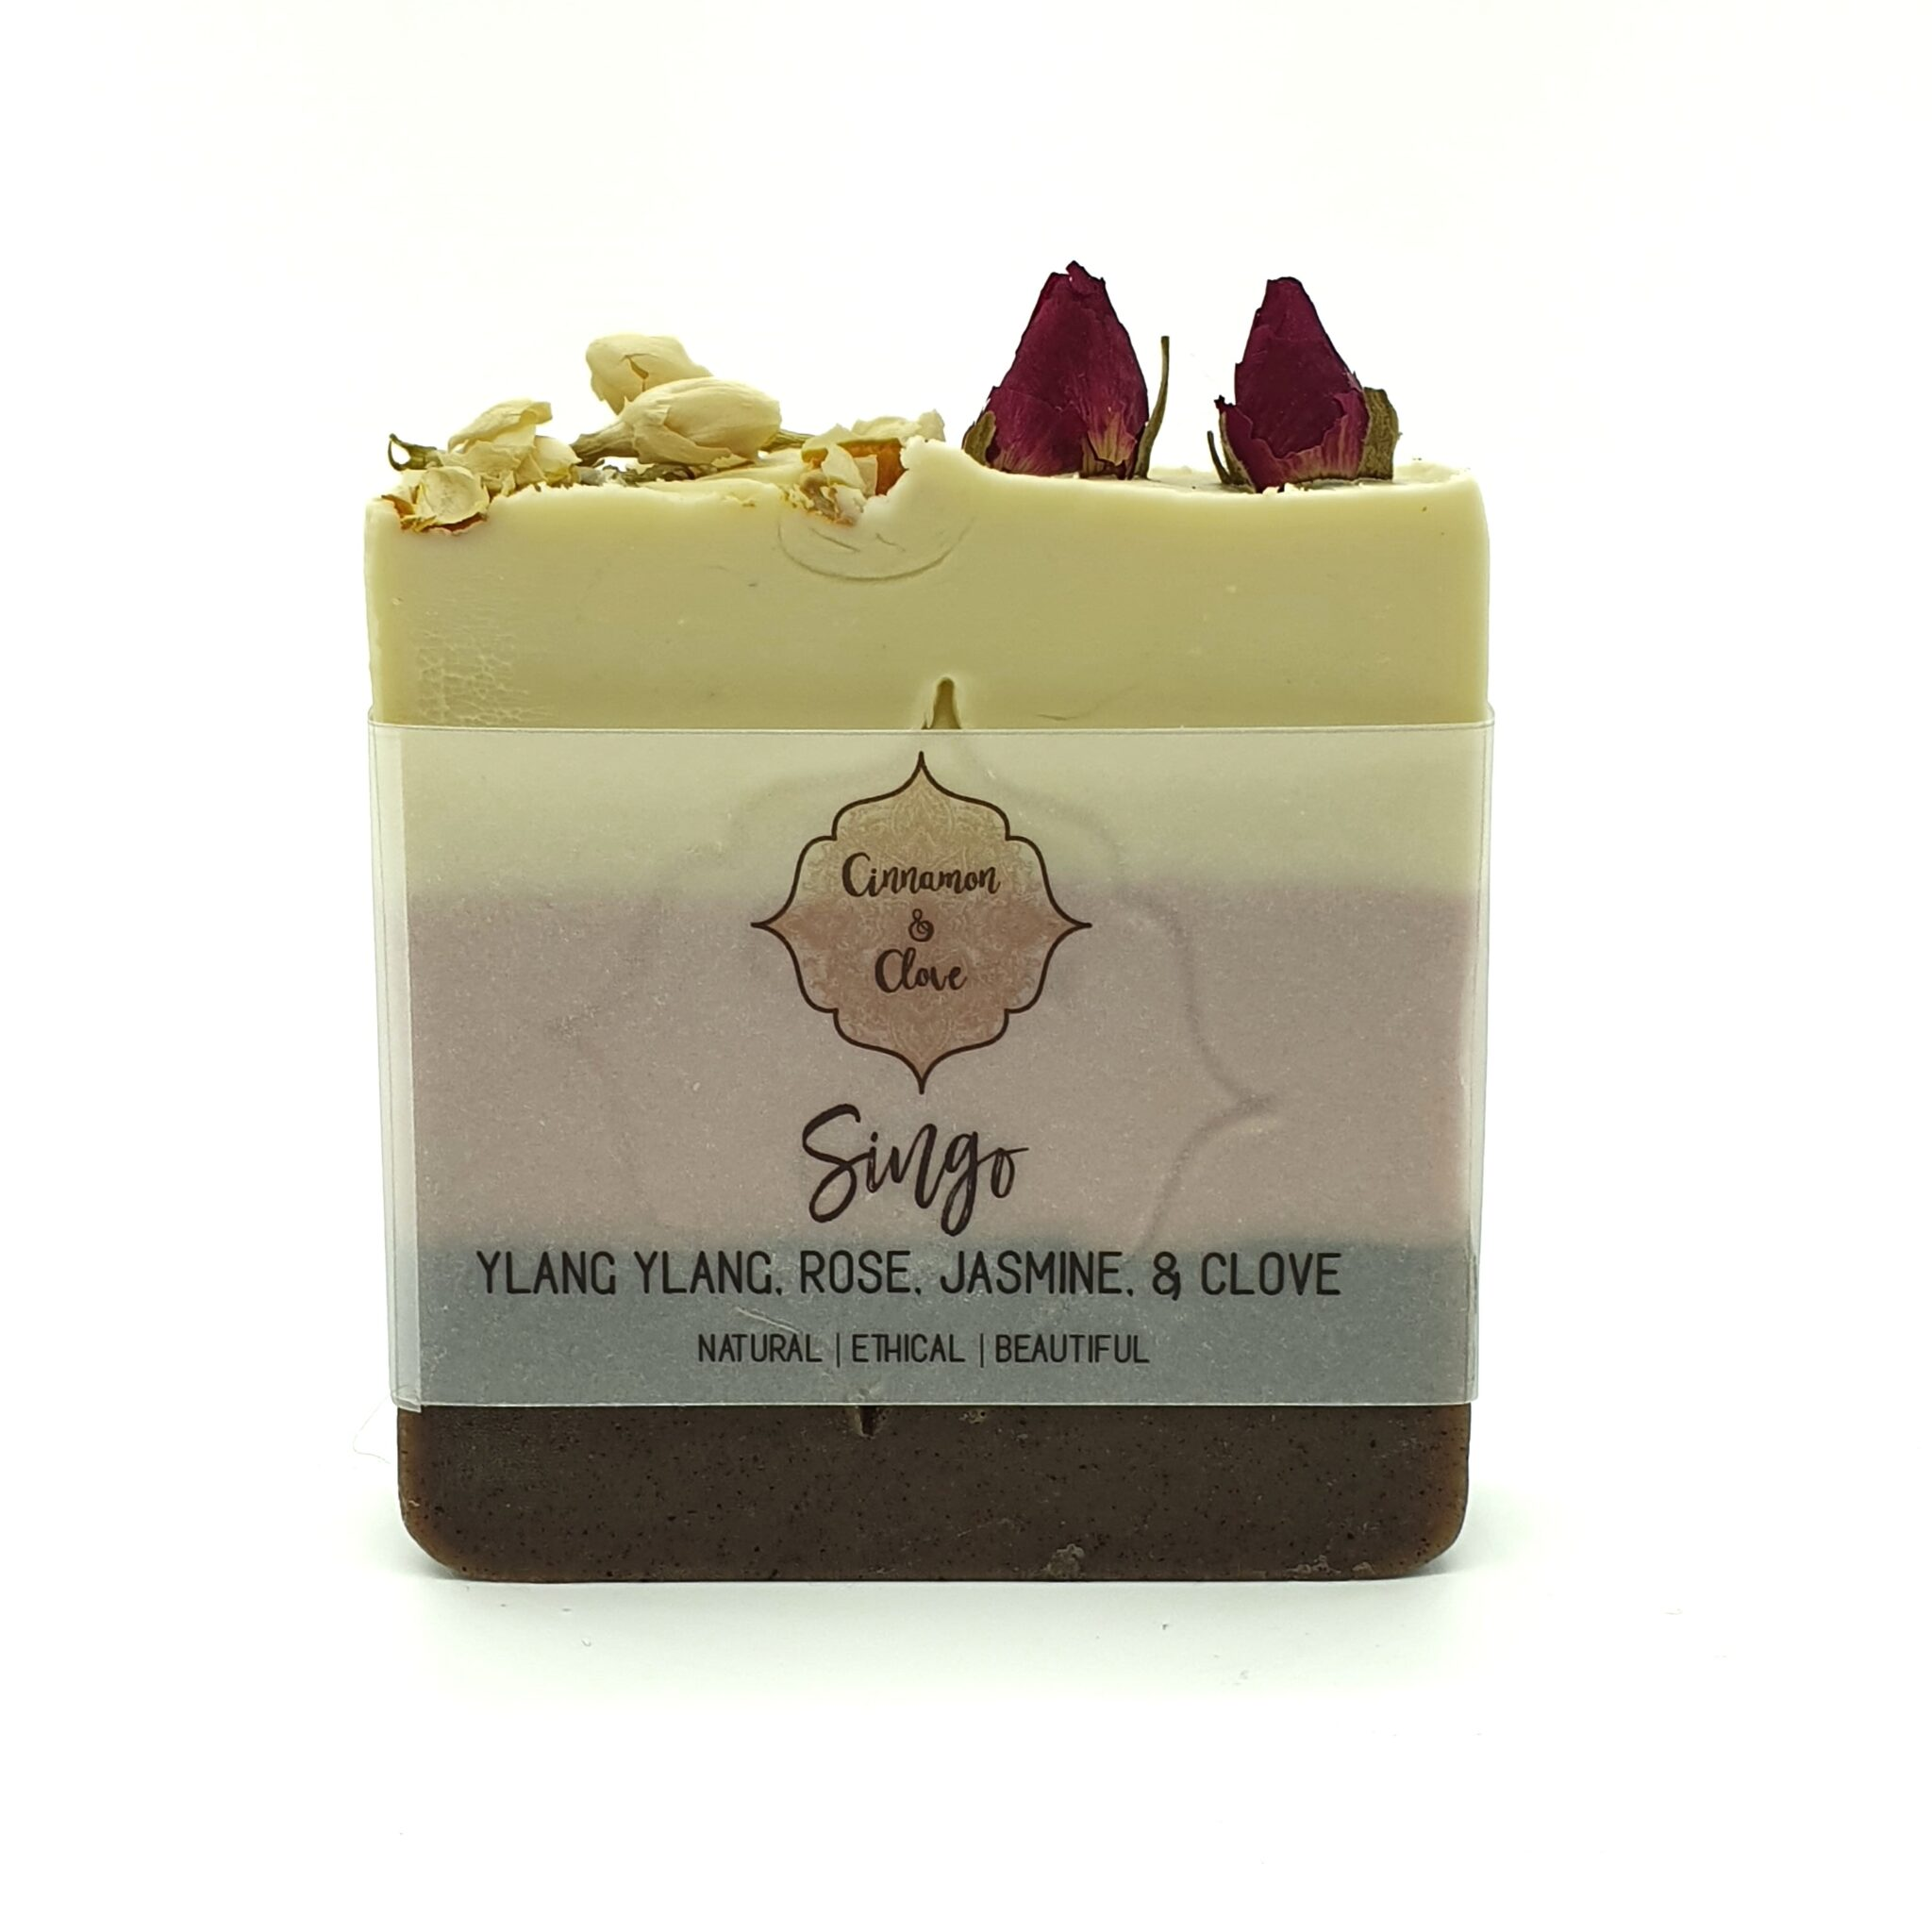 Singo – Handcrafted All Natural Artisan Soap By Cinnamon And Clove (Fitzroy)